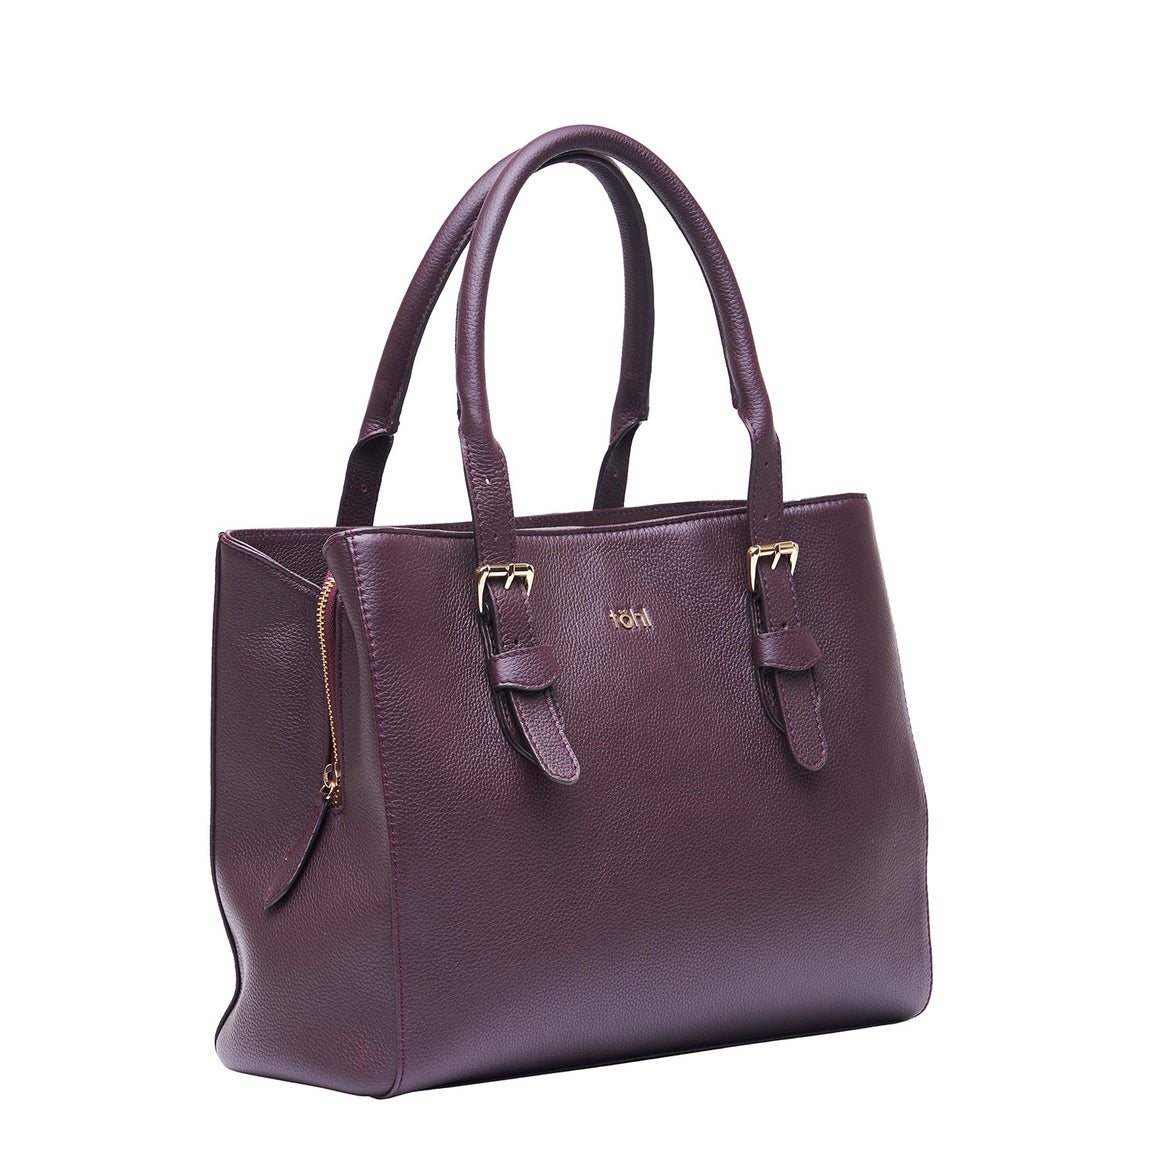 HH 0017 - TOHL COLEMAN WOMEN'S HAND BAG - PLUM